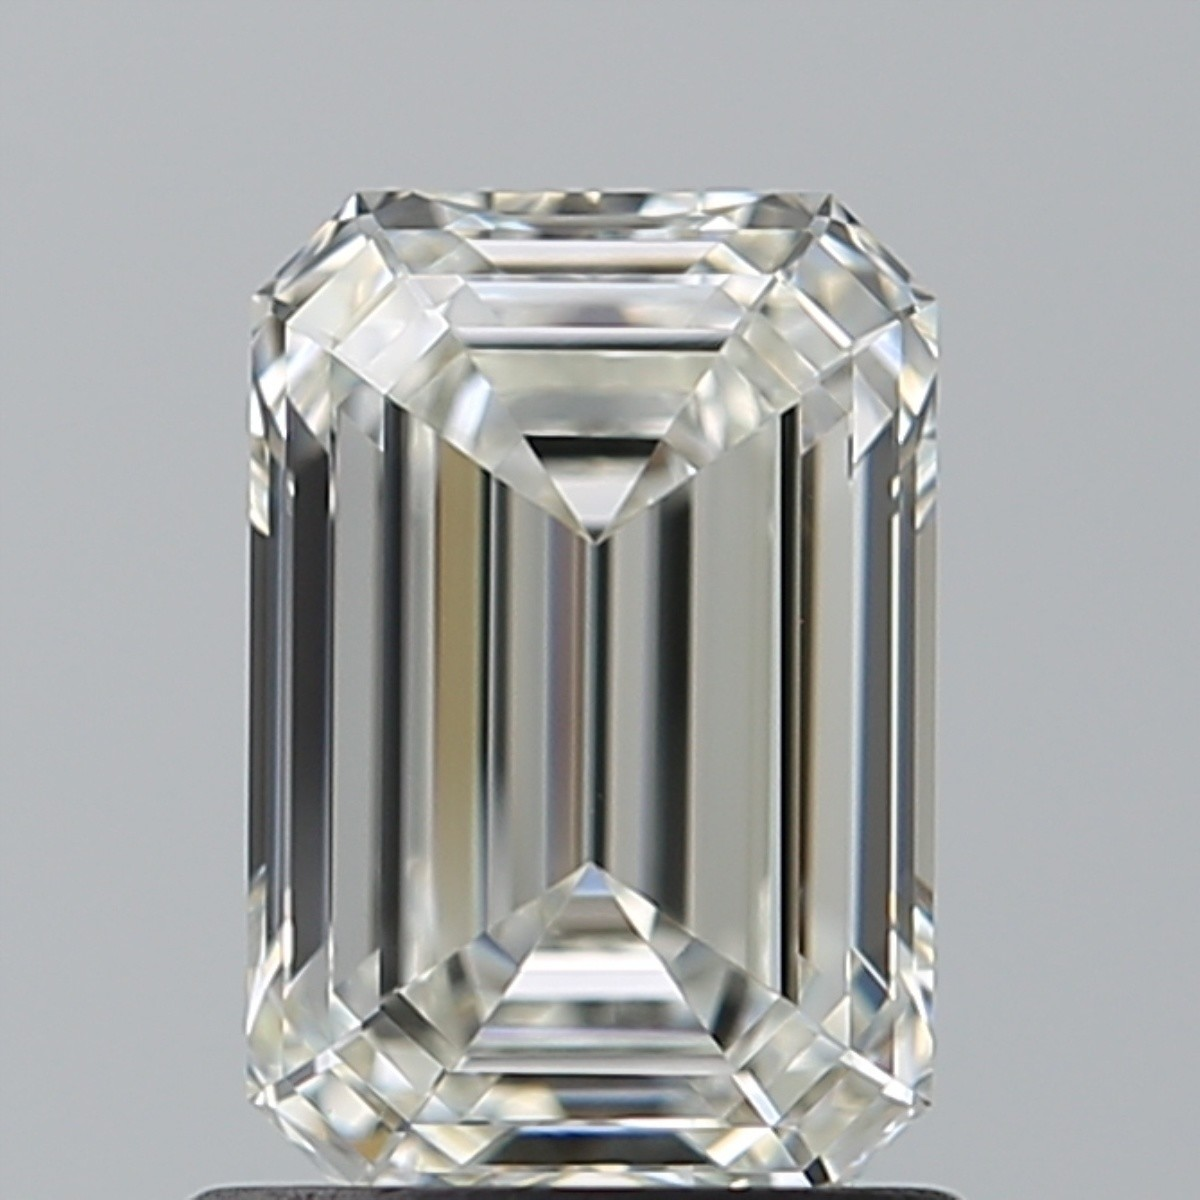 1.20 Carat Emerald Diamond (I/VVS1)